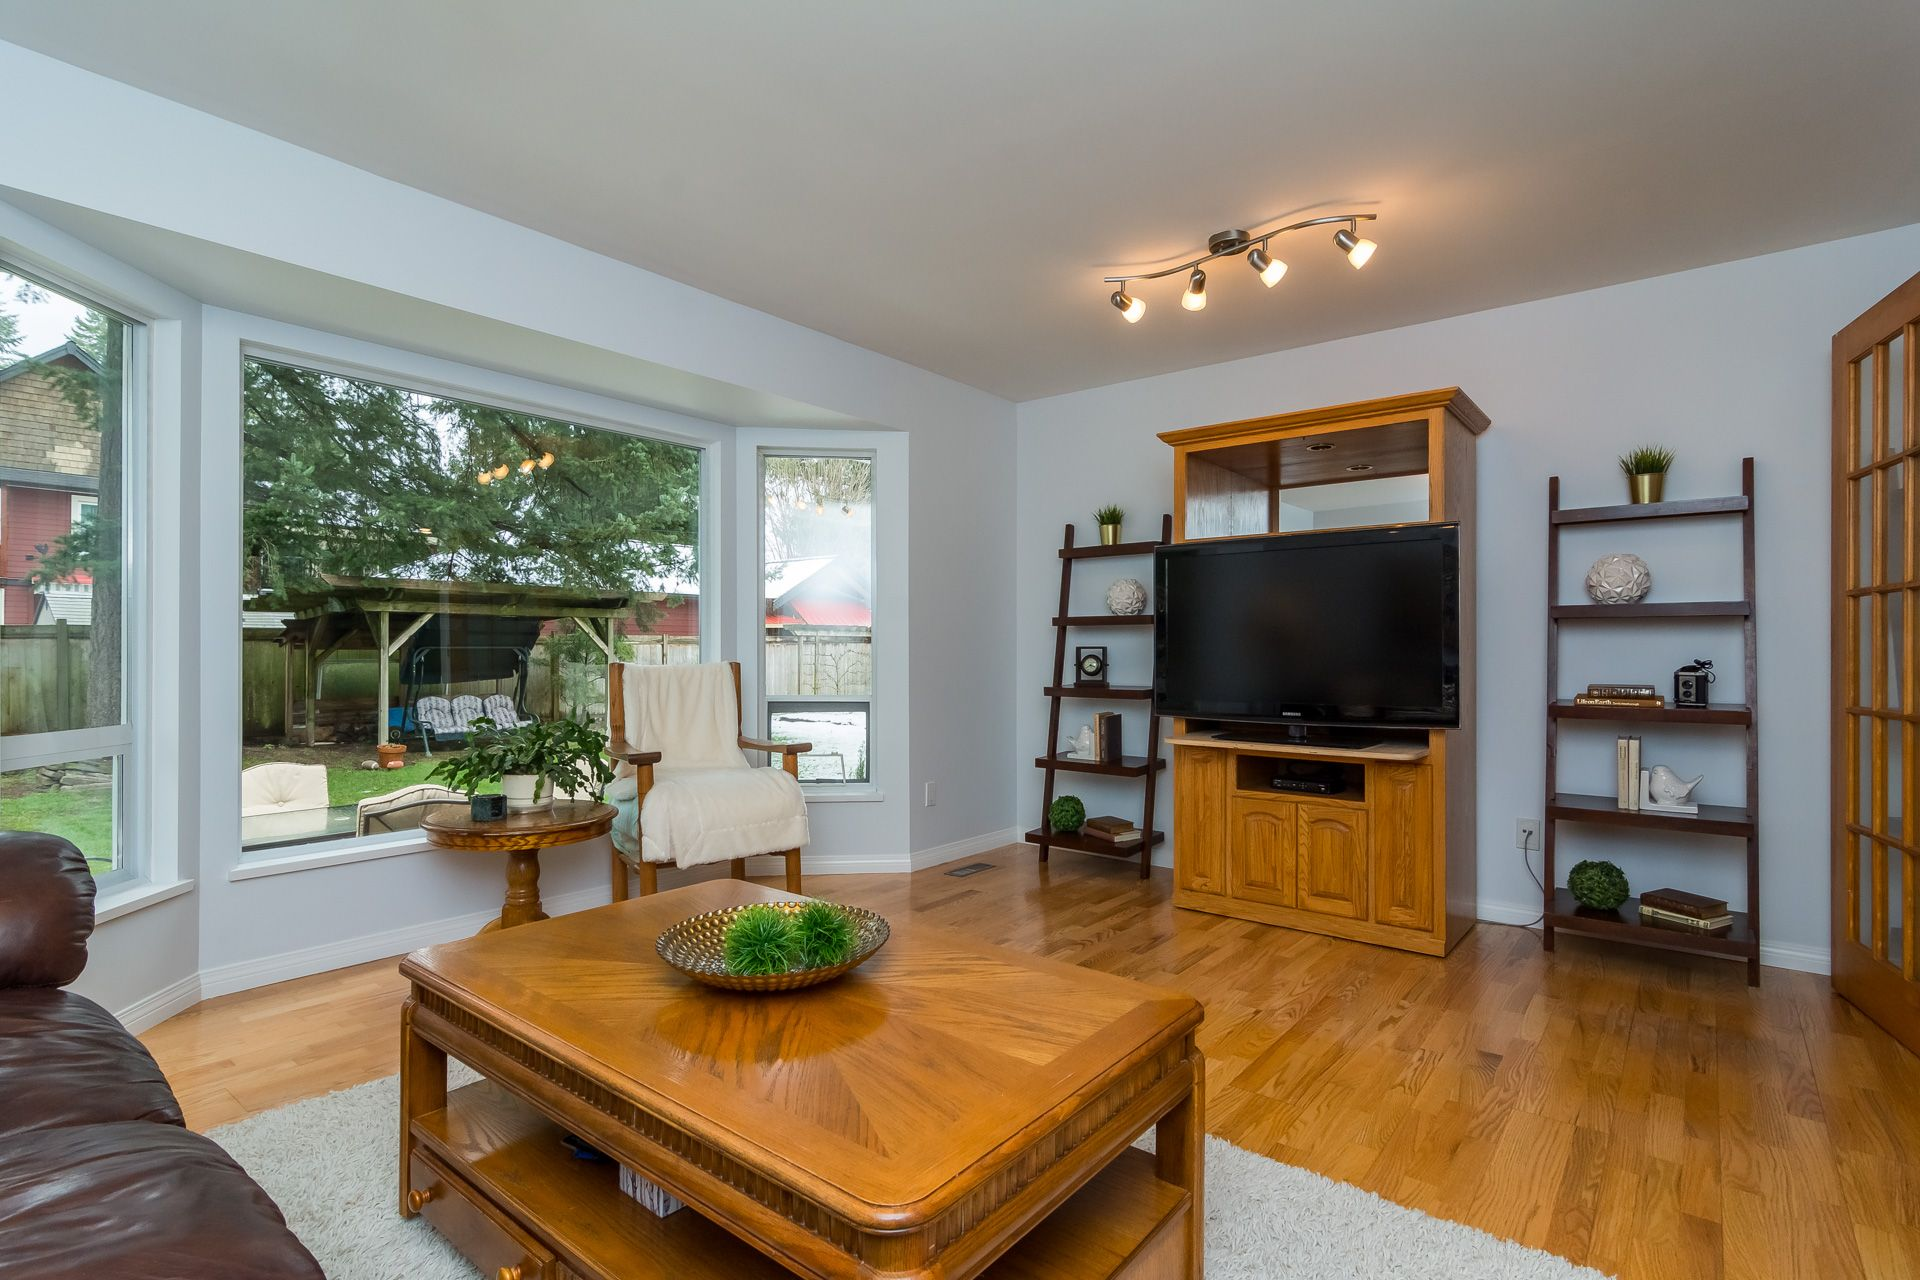 """Photo 10: Photos: 19941 37 Avenue in Langley: Brookswood Langley House for sale in """"Brookswood"""" : MLS®# R2240474"""